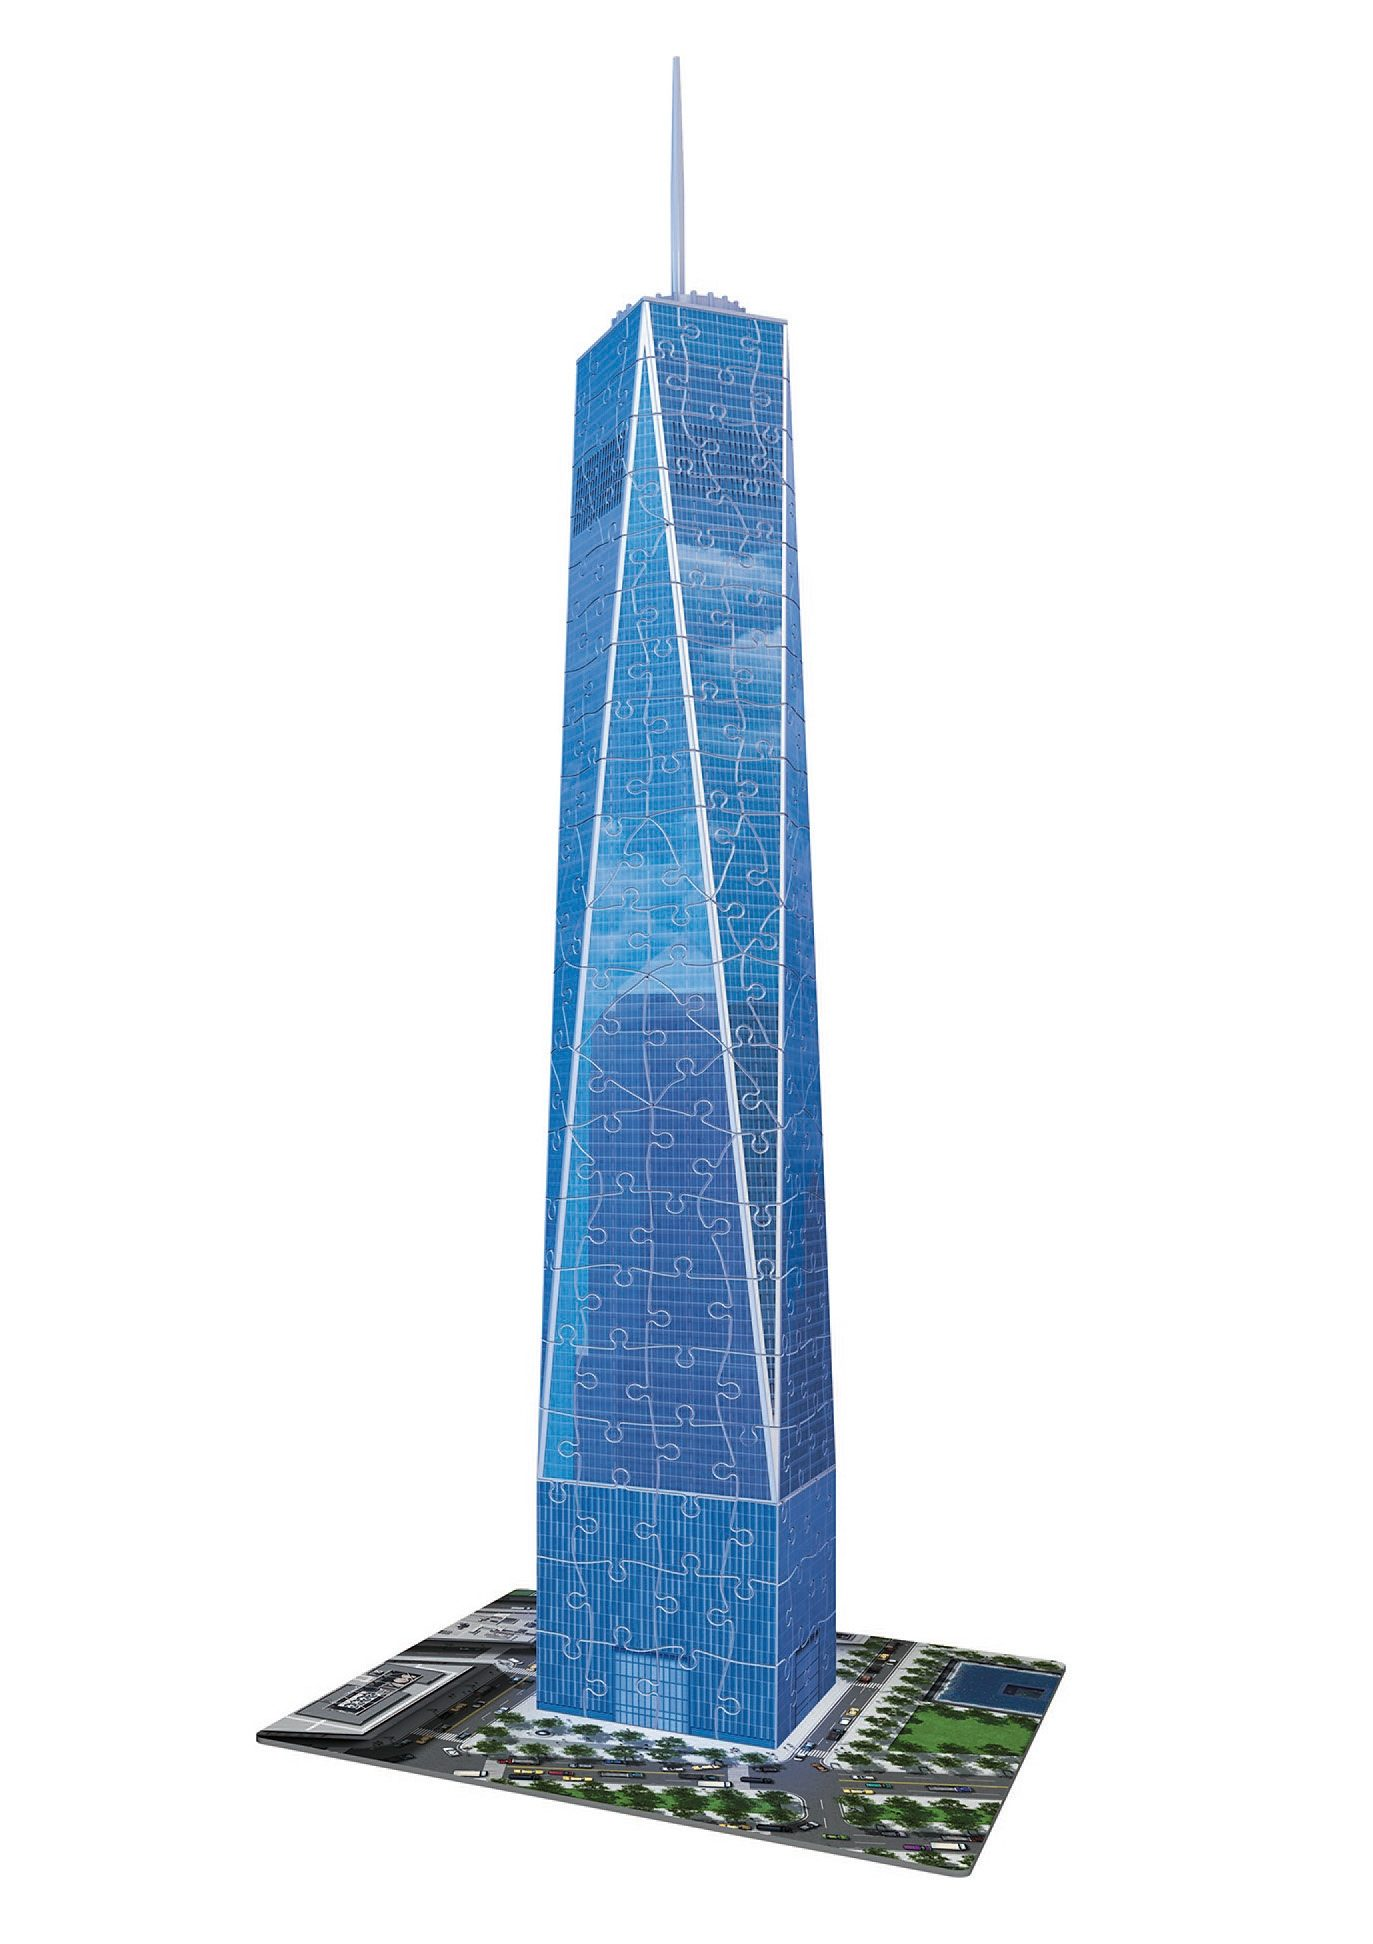 Ravensburger 3D Puzzle, »One World Trade Center N.Y«